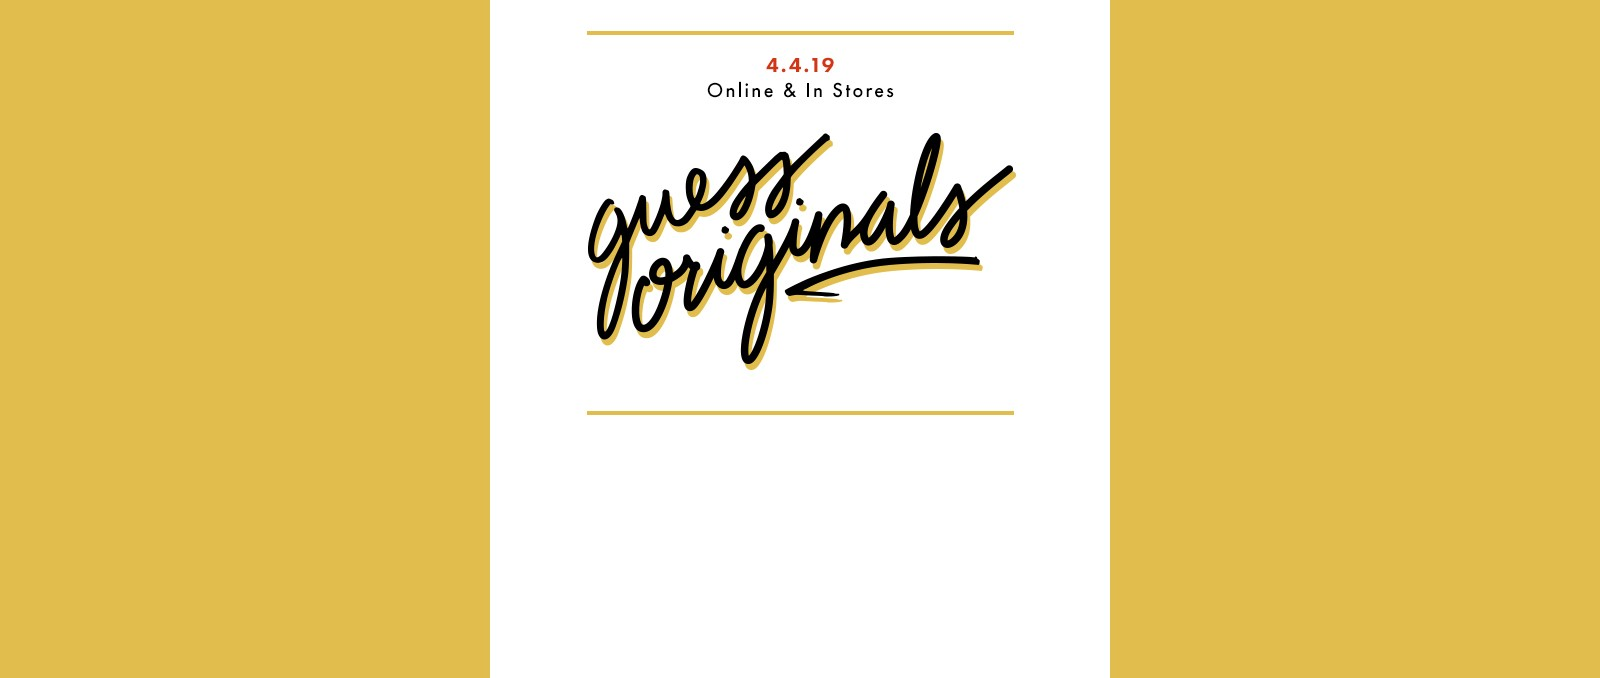 GUESS Originals release page